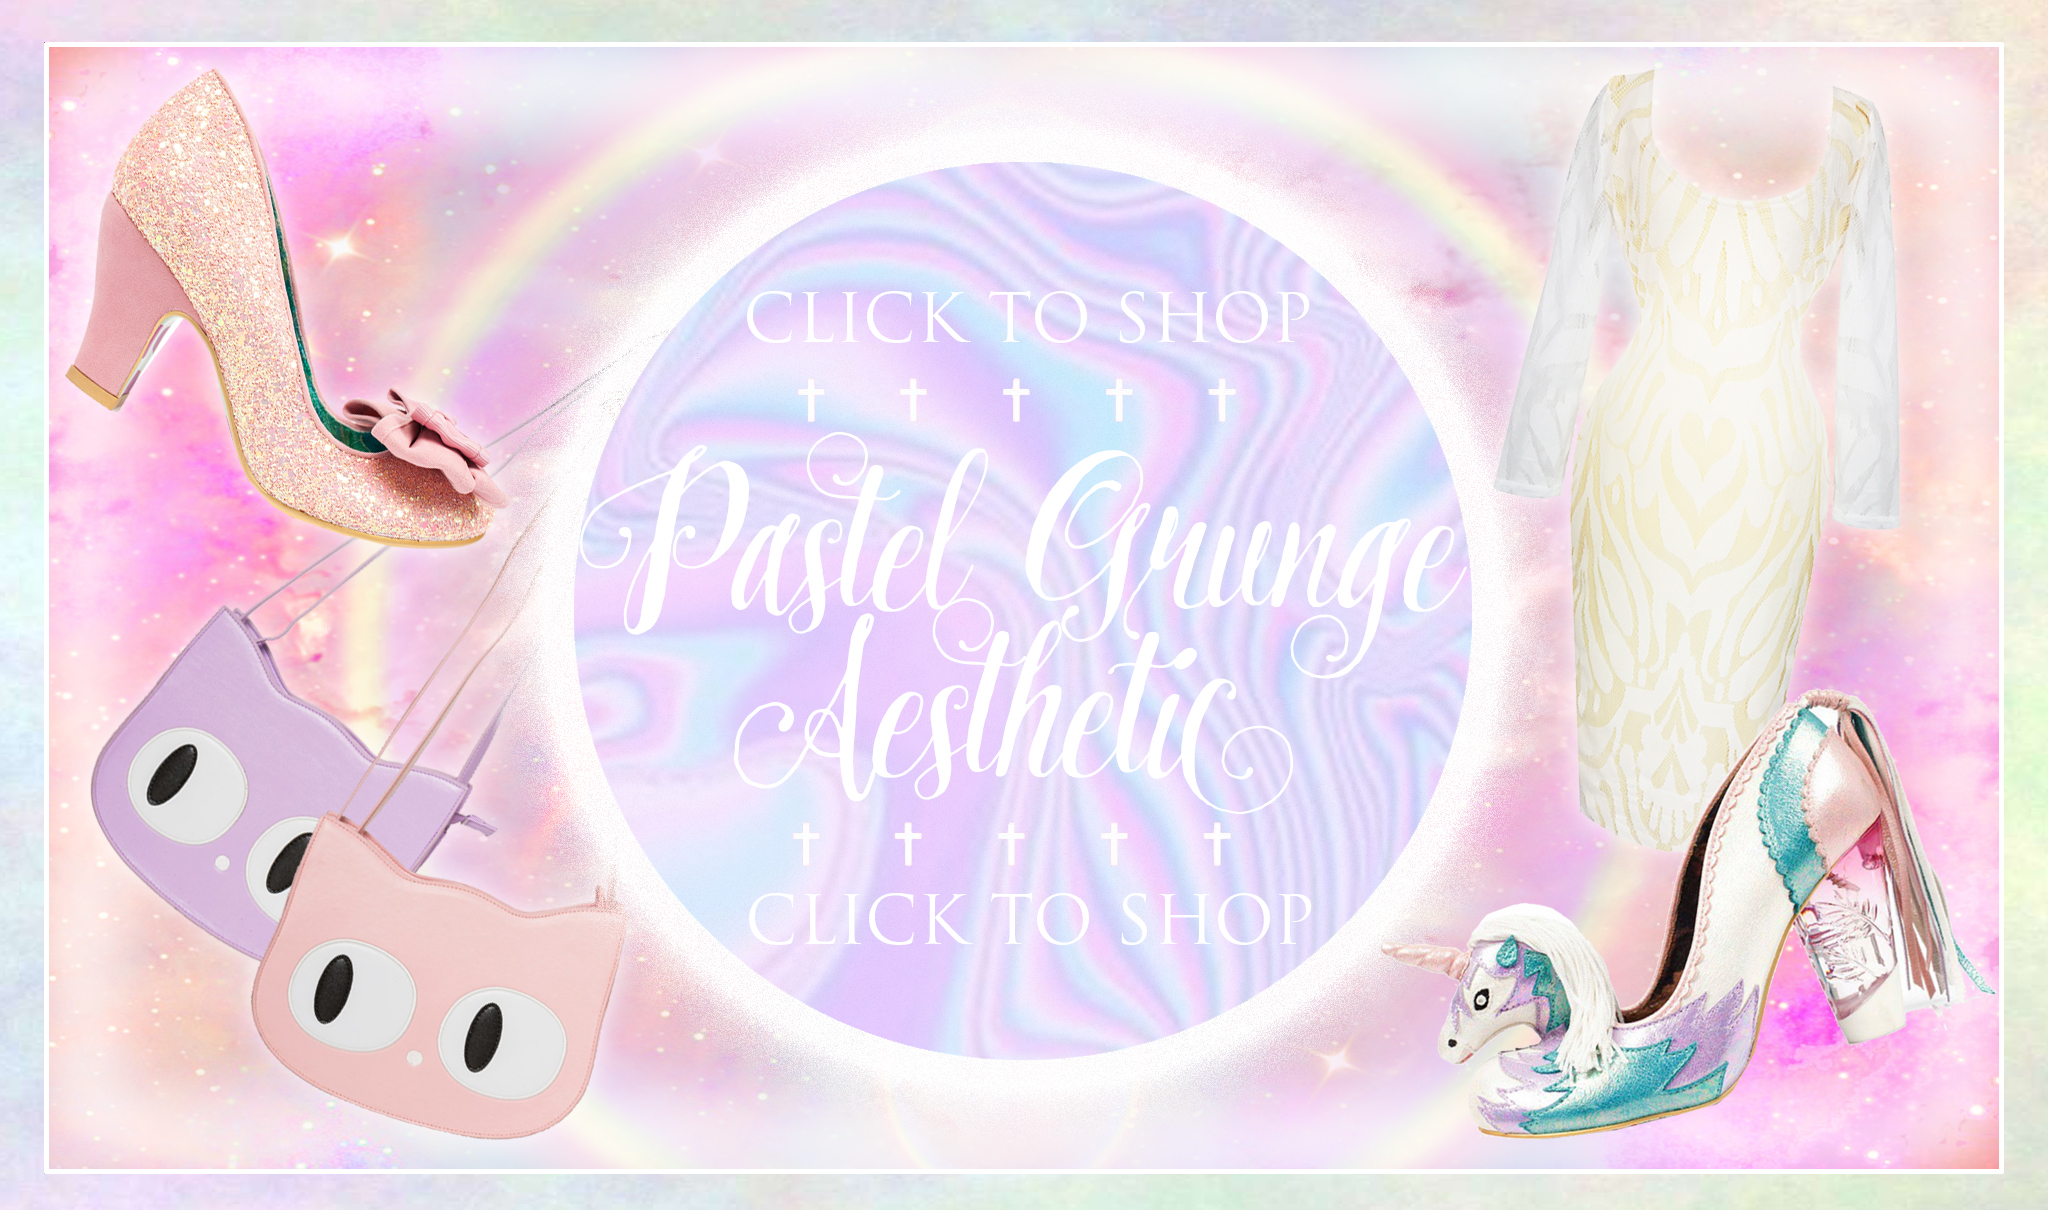 Brand new Pastel Grunge and Pastel Punk Clothing and Shoes